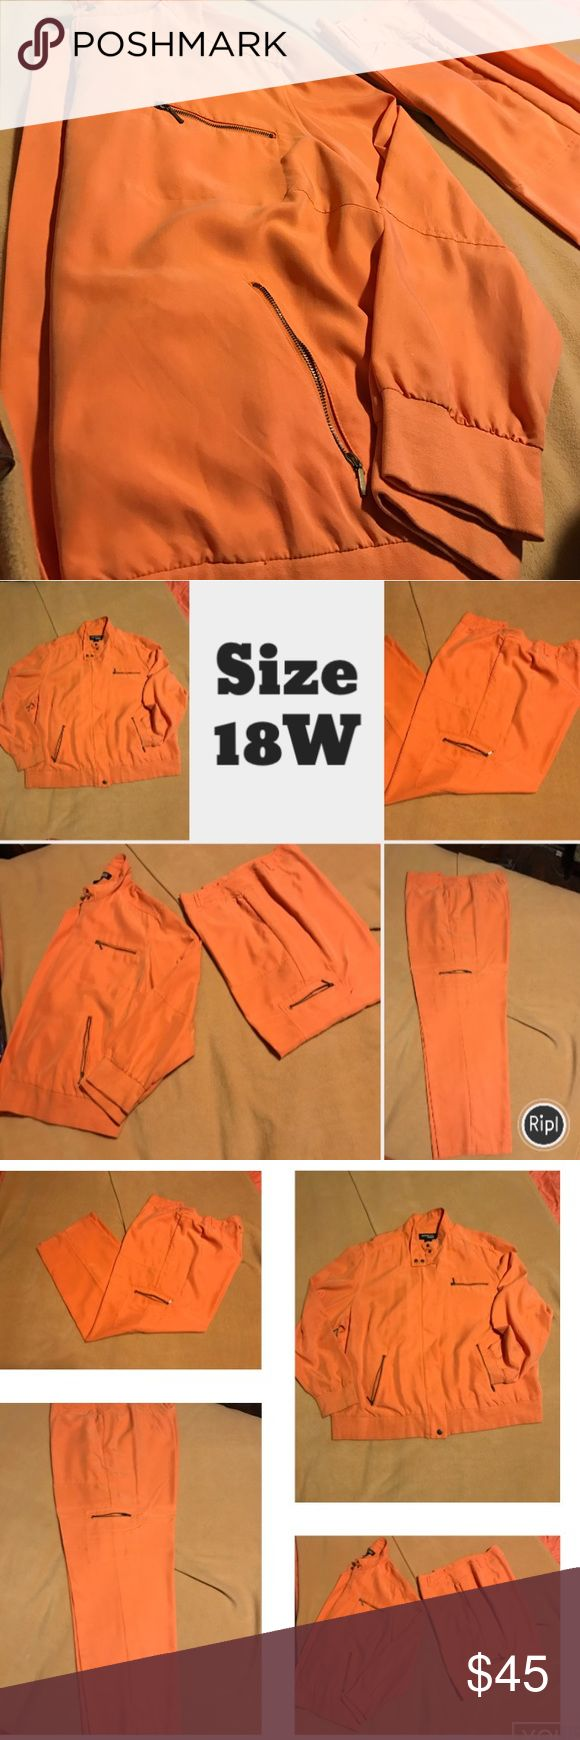 Vintage Cool feeling Rayon pants Suit Size 18W light, cool versatile pants suit. Where it with cute sneakers or Pumps! Very soft feeling and flowy! Norton Studio Woman Pants Track Pants & Joggers